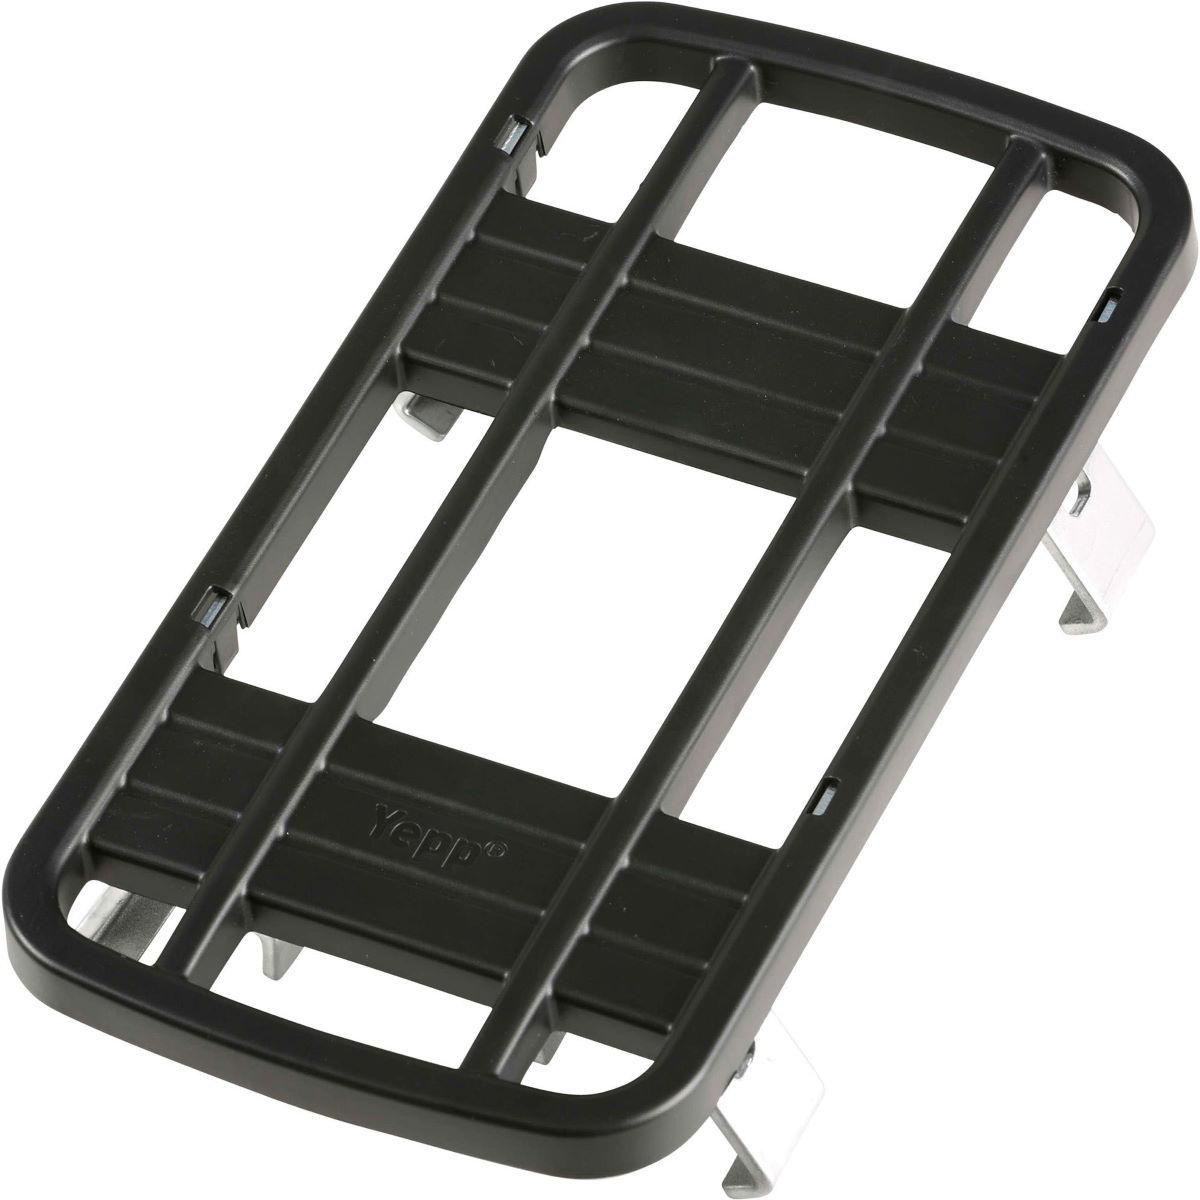 Thule Yepp Easyfit Adapter - One Size Black  Child Seat Spares